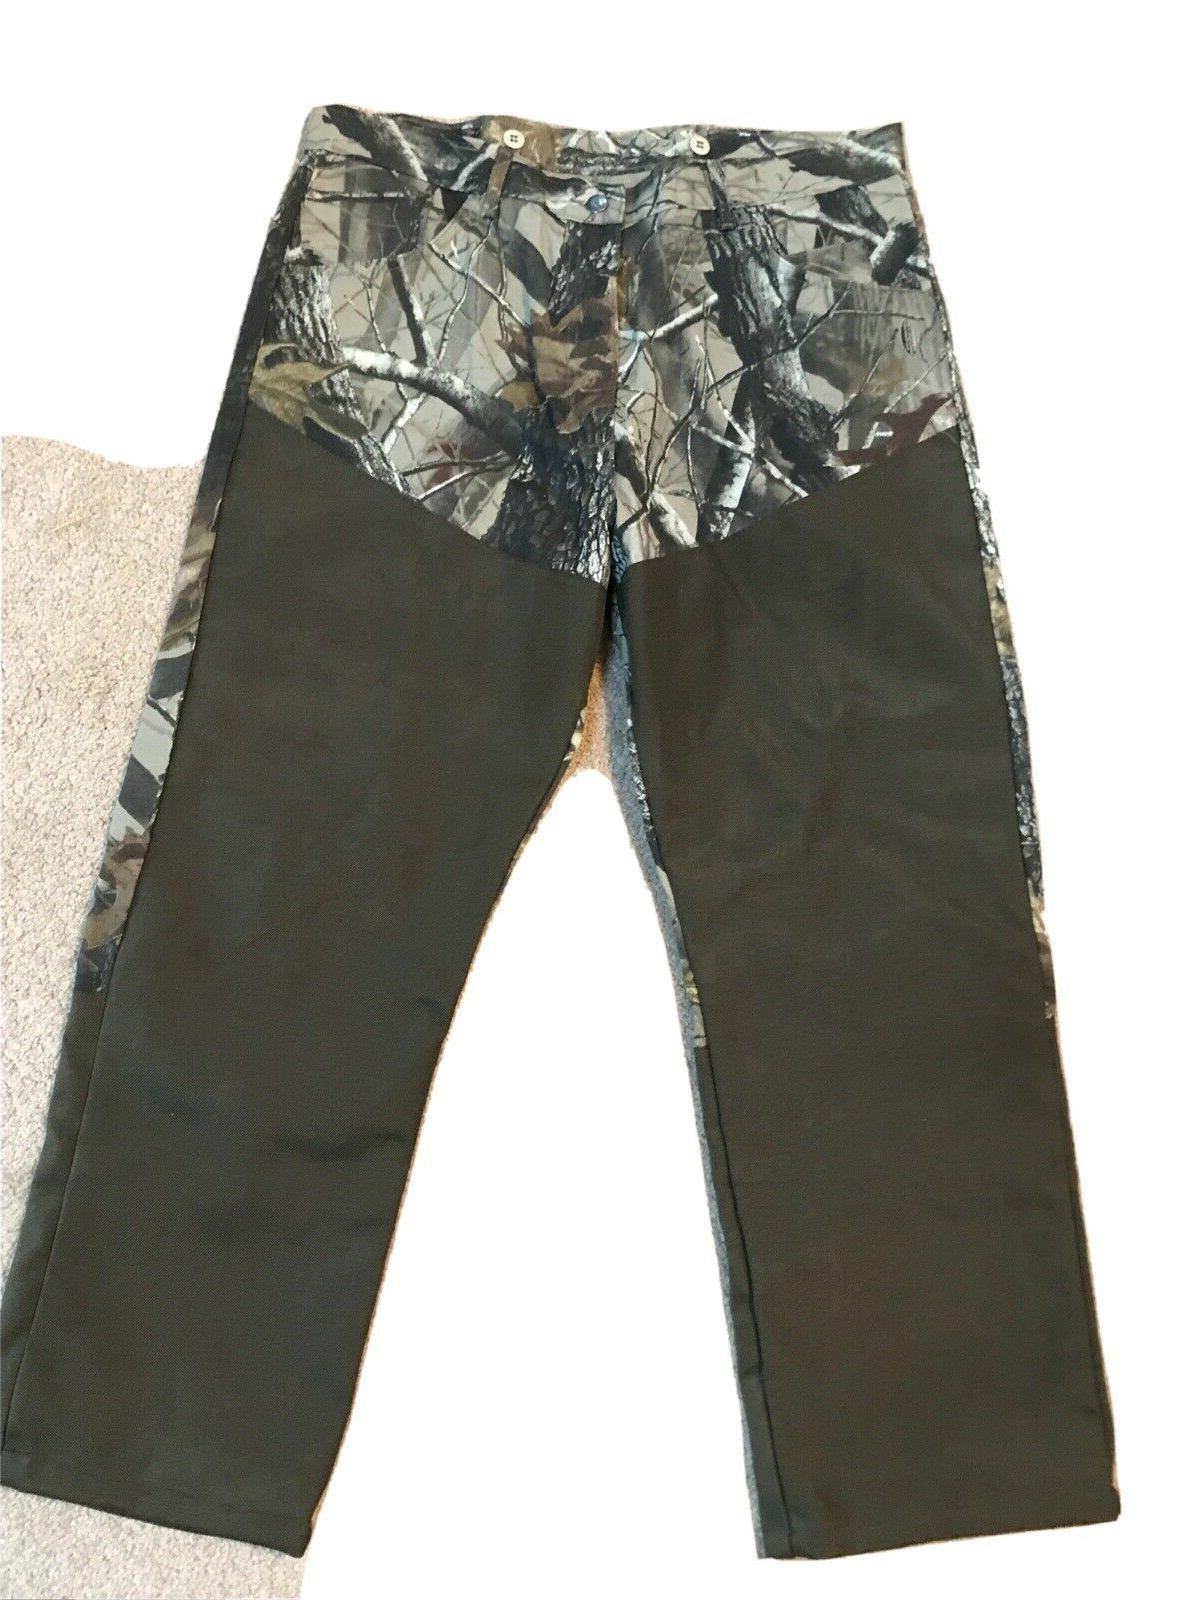 men s hunting outdoors outerwear camo pants